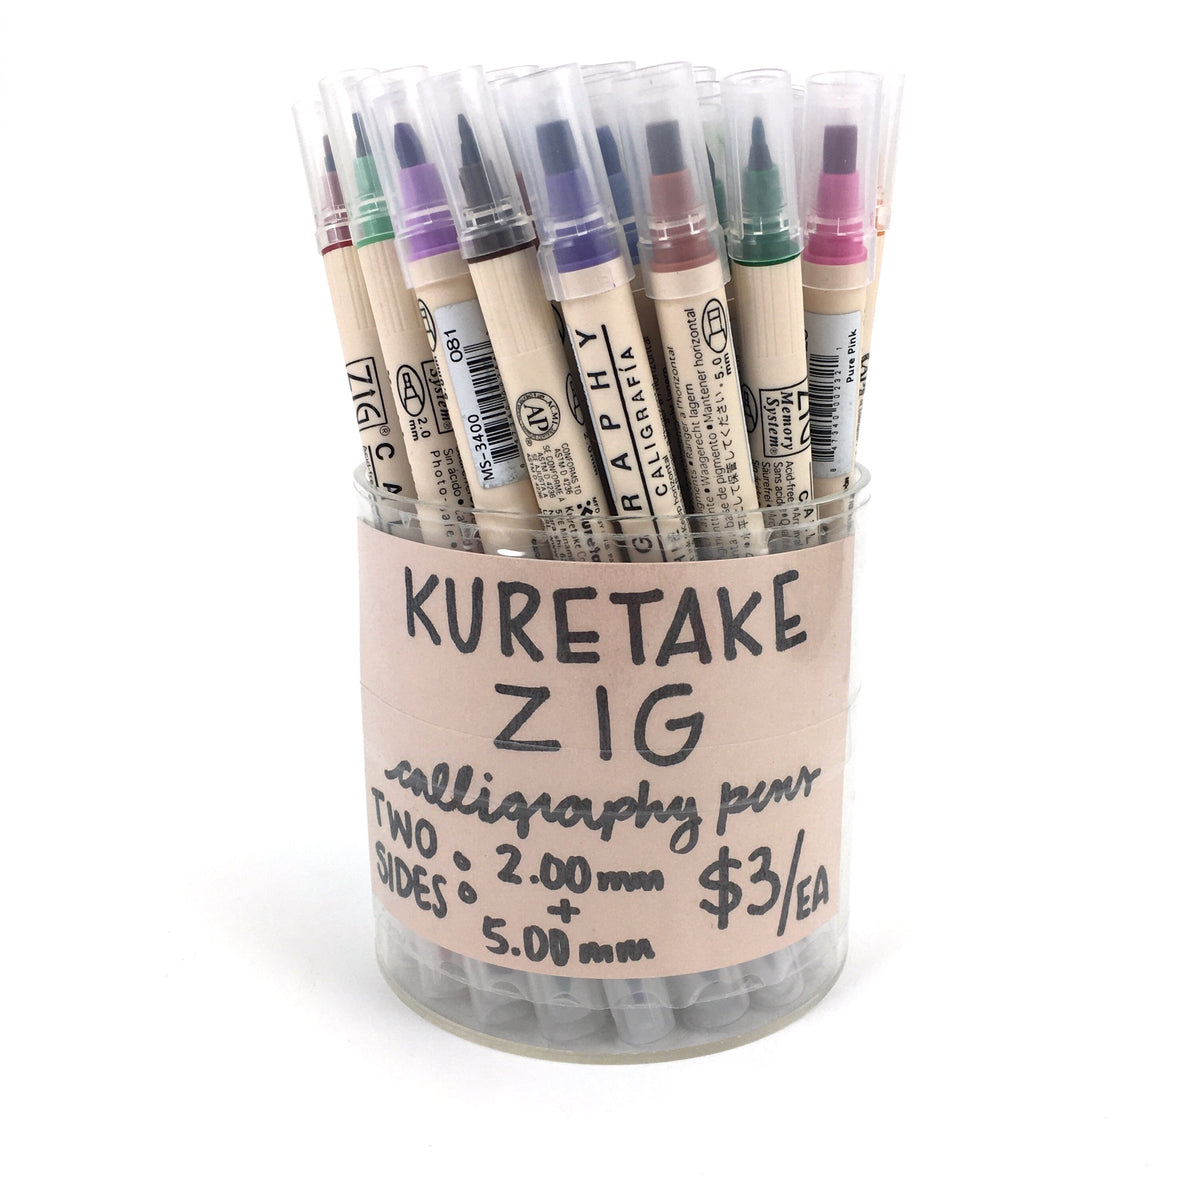 Kuretake Zig Calligraphy Double-Sided Markers - Matte